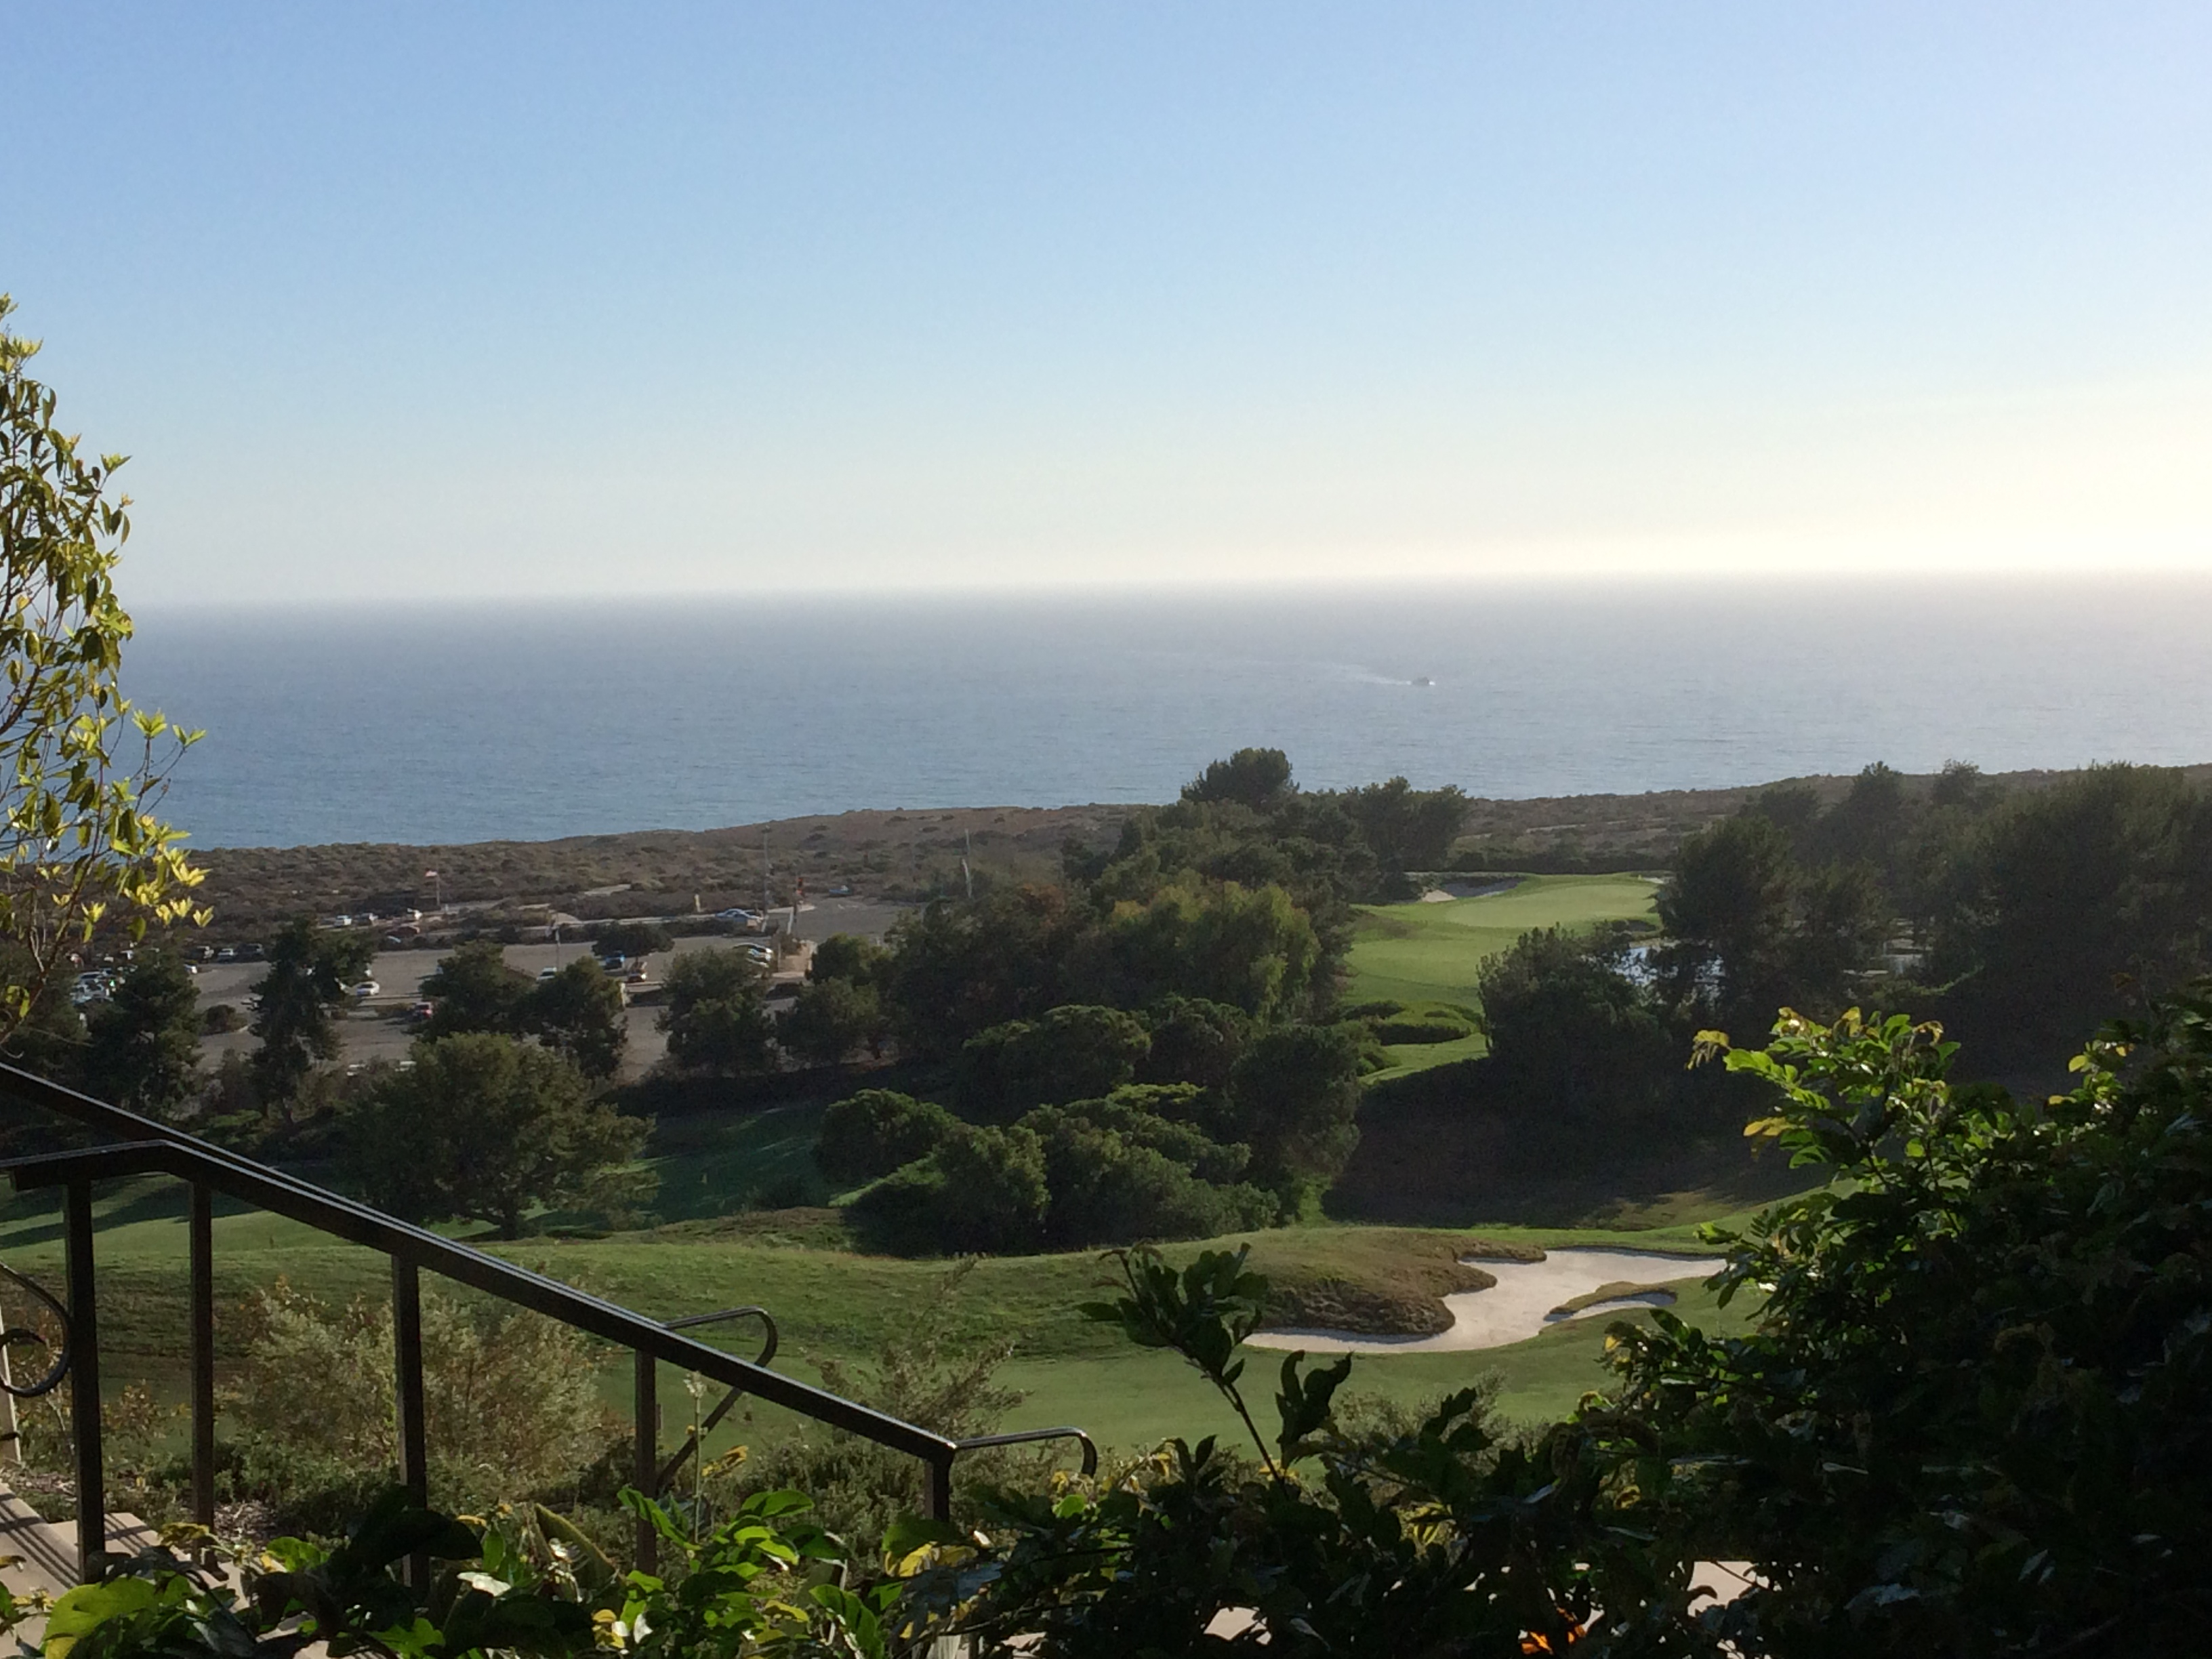 Watching a whale blow water from the balcony of our Newport Coast digs